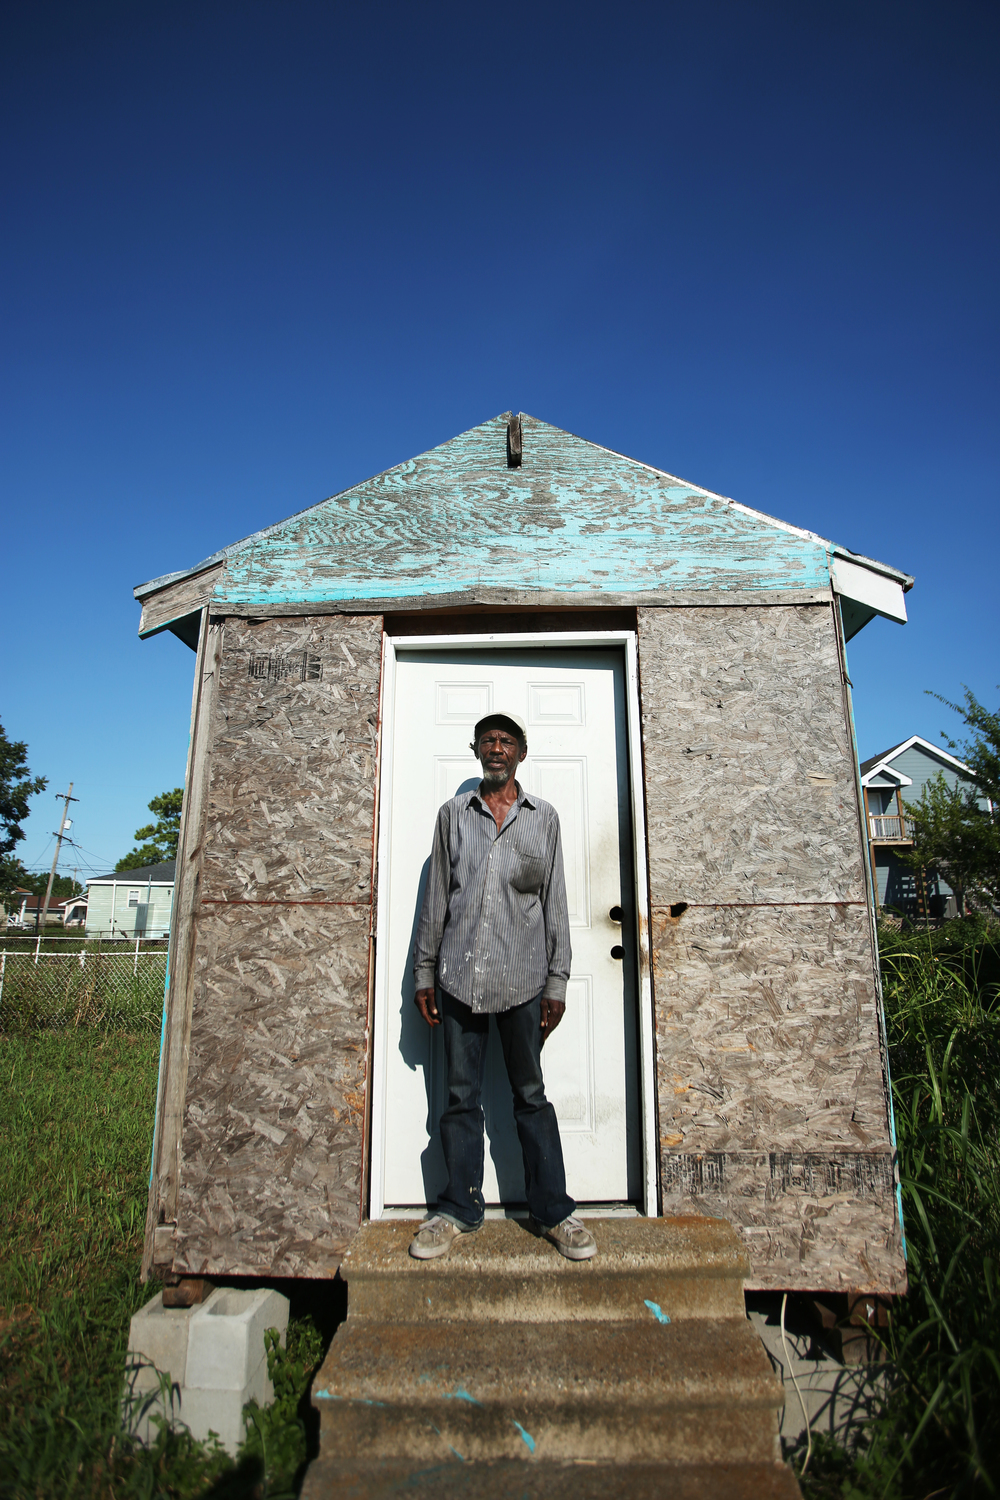 Ronnie Brown  Lower Ninth Ward  New Orleans, Louisiana  August 2015